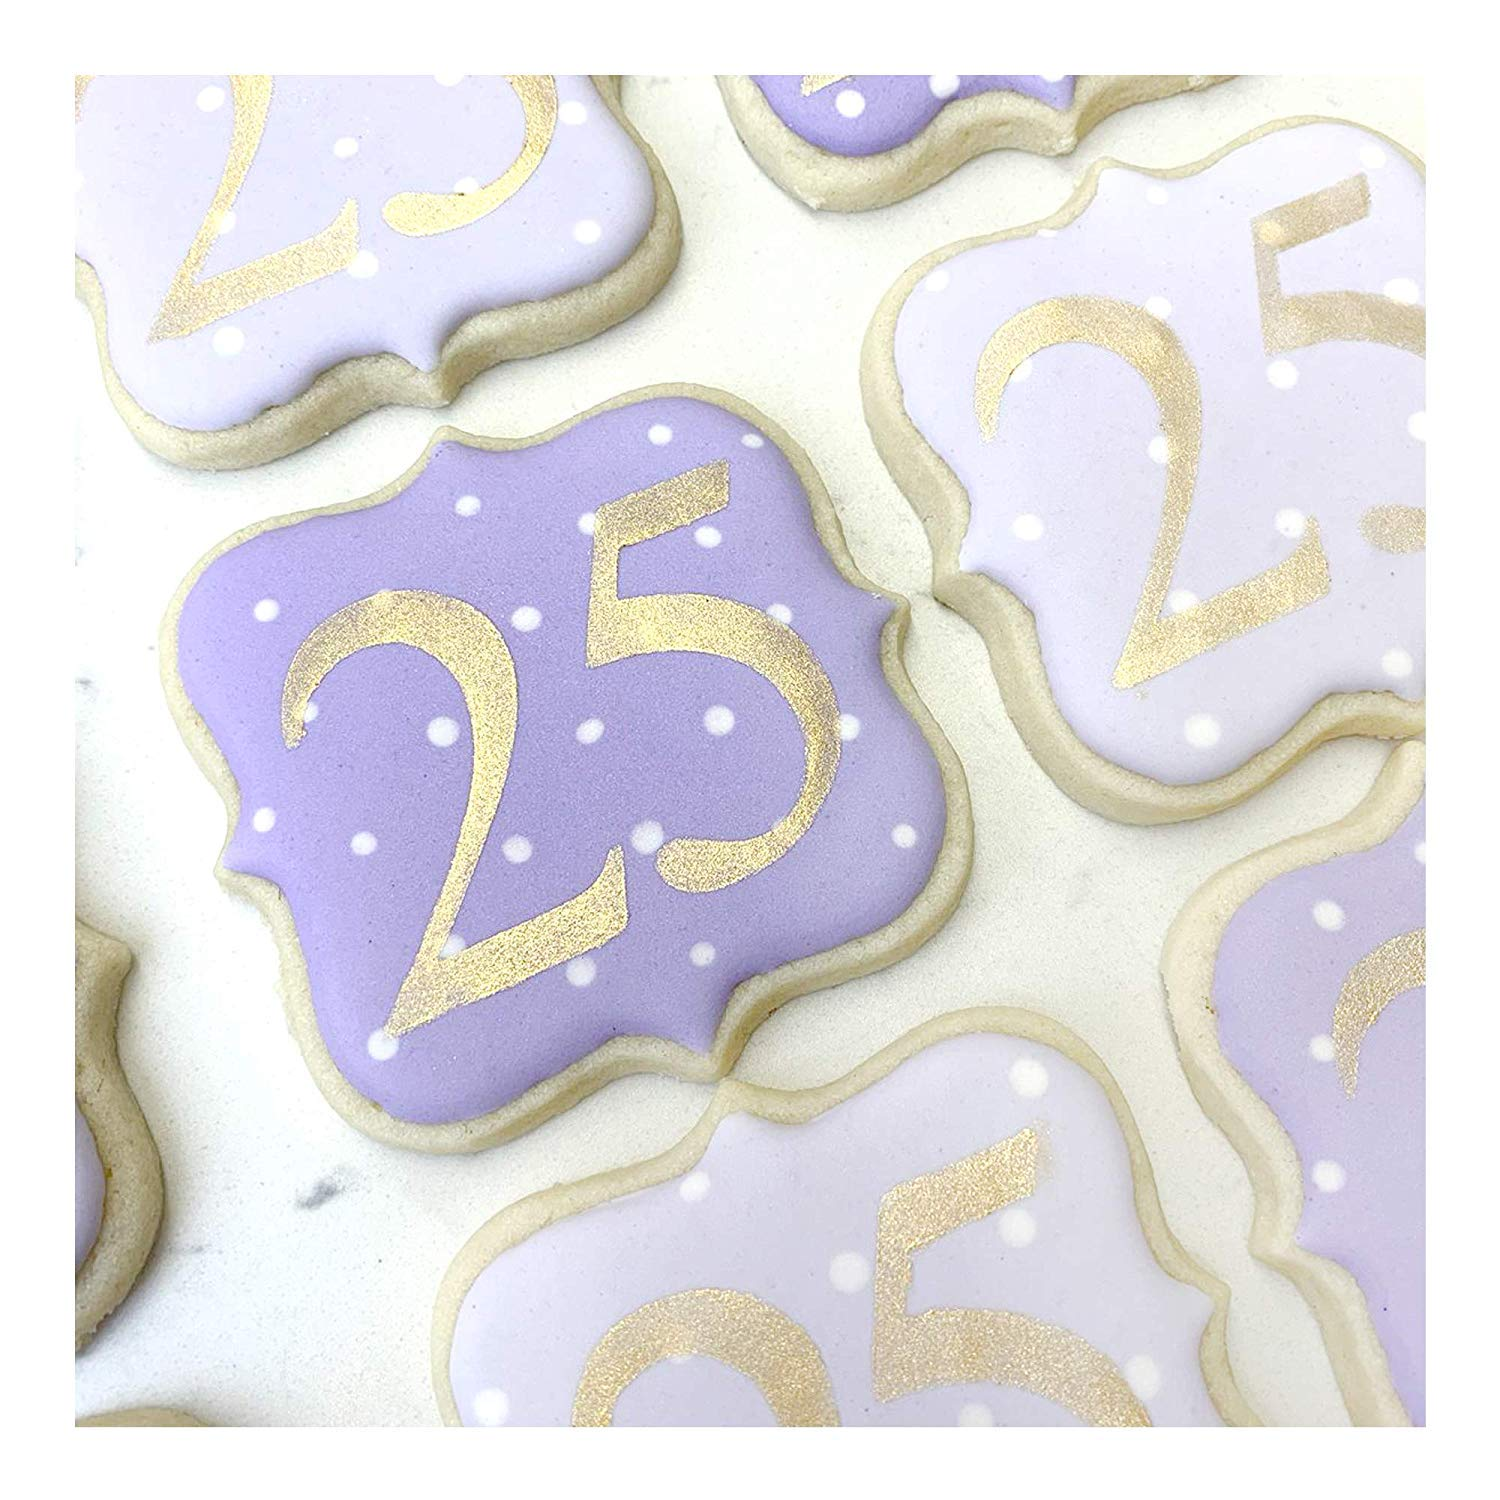 4 PCS Cake Alphabet Number Stencils 2 Inches Times New Roman for Cake Art Crafts Painting with Art Brush//Storage Bag//Ruler 6.3 x 11.6 inch